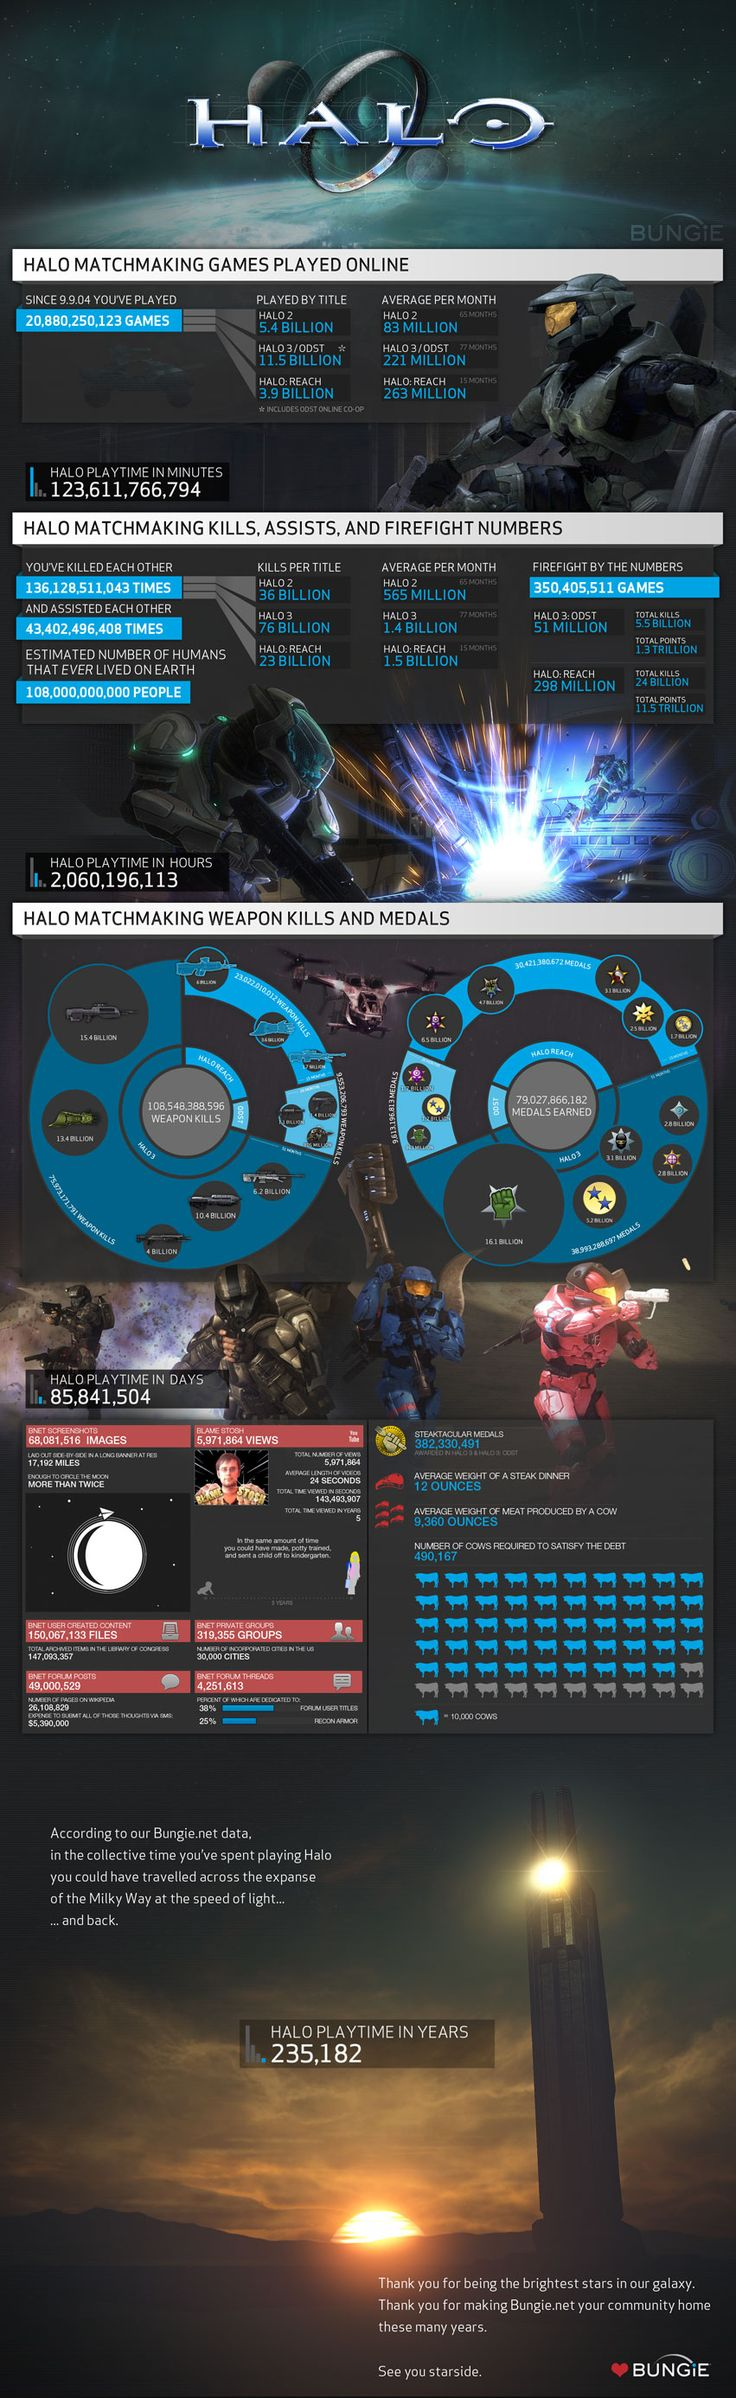 Bungie Says Farewell to Halo Franchise Releasing a Huge Infographic